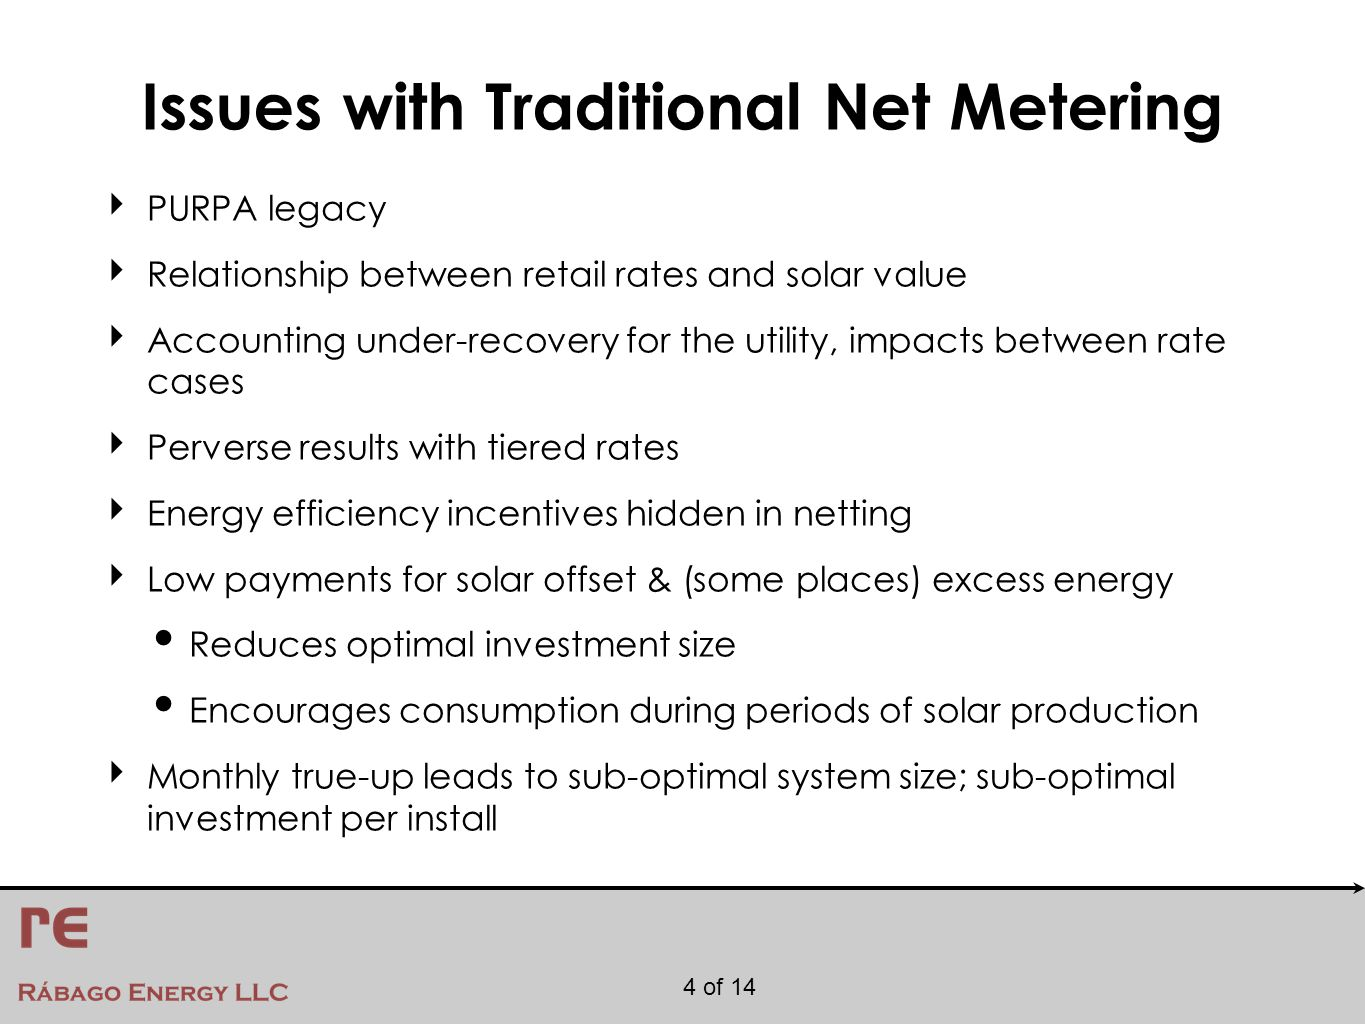 4 of 14 Issues with Traditional Net Metering ‣ PURPA legacy ‣ Relationship between retail rates and solar value ‣ Accounting under-recovery for the utility, impacts between rate cases ‣ Perverse results with tiered rates ‣ Energy efficiency incentives hidden in netting ‣ Low payments for solar offset & (some places) excess energy Reduces optimal investment size Encourages consumption during periods of solar production ‣ Monthly true-up leads to sub-optimal system size; sub-optimal investment per install